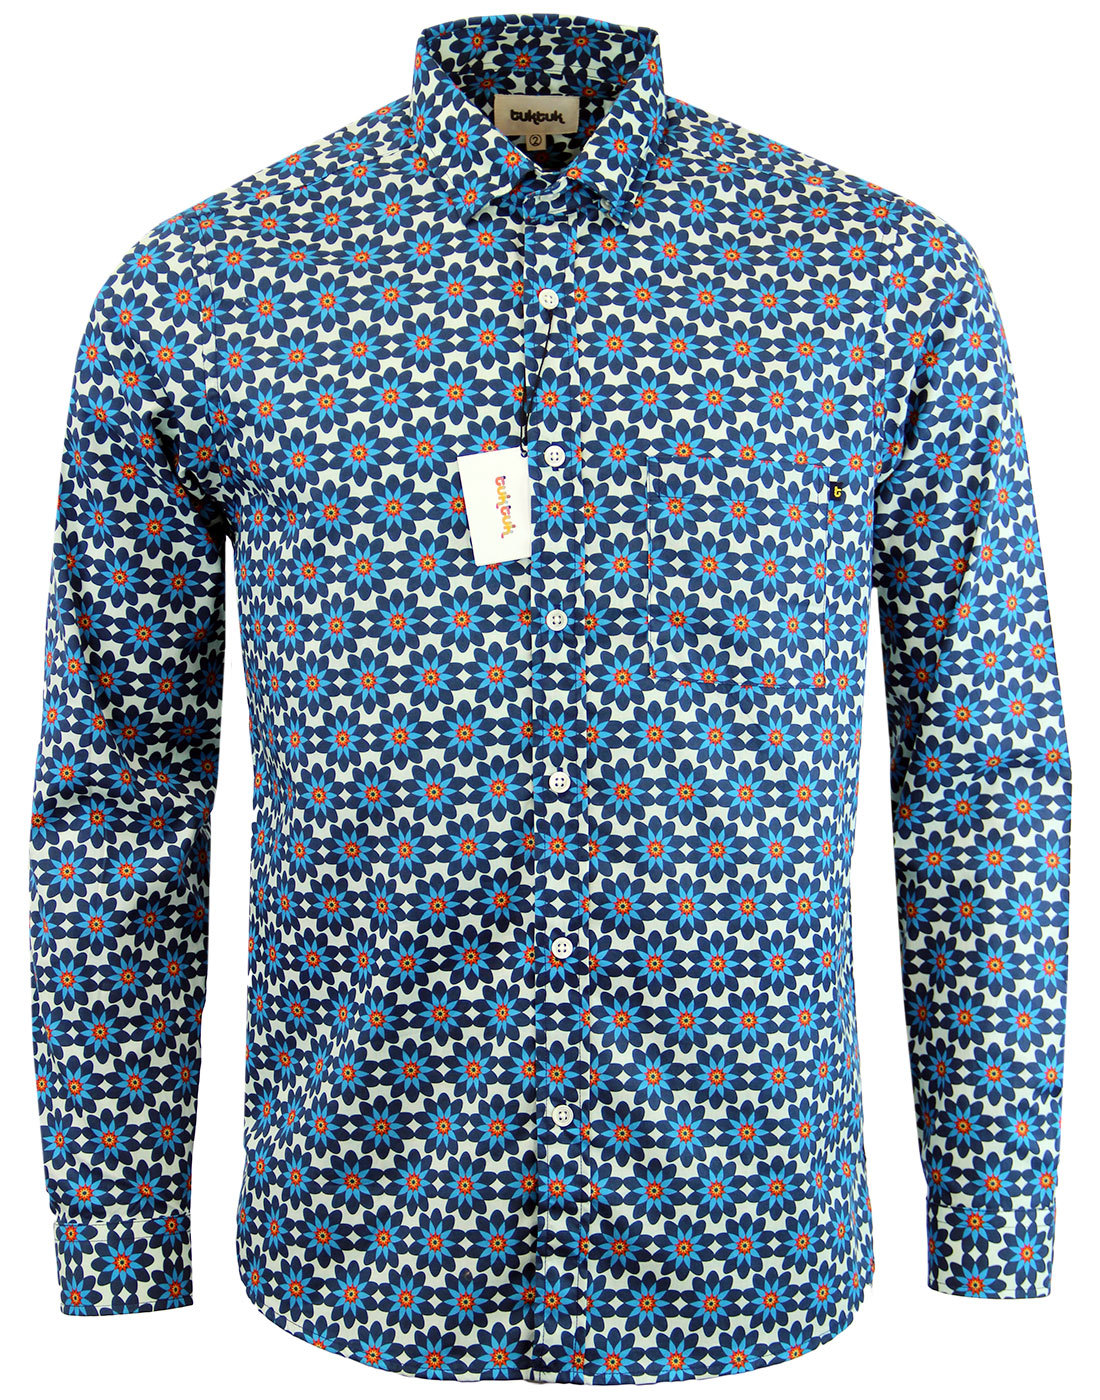 Cognito TUKTUK Retro 60s Psychedelic Floral Shirt